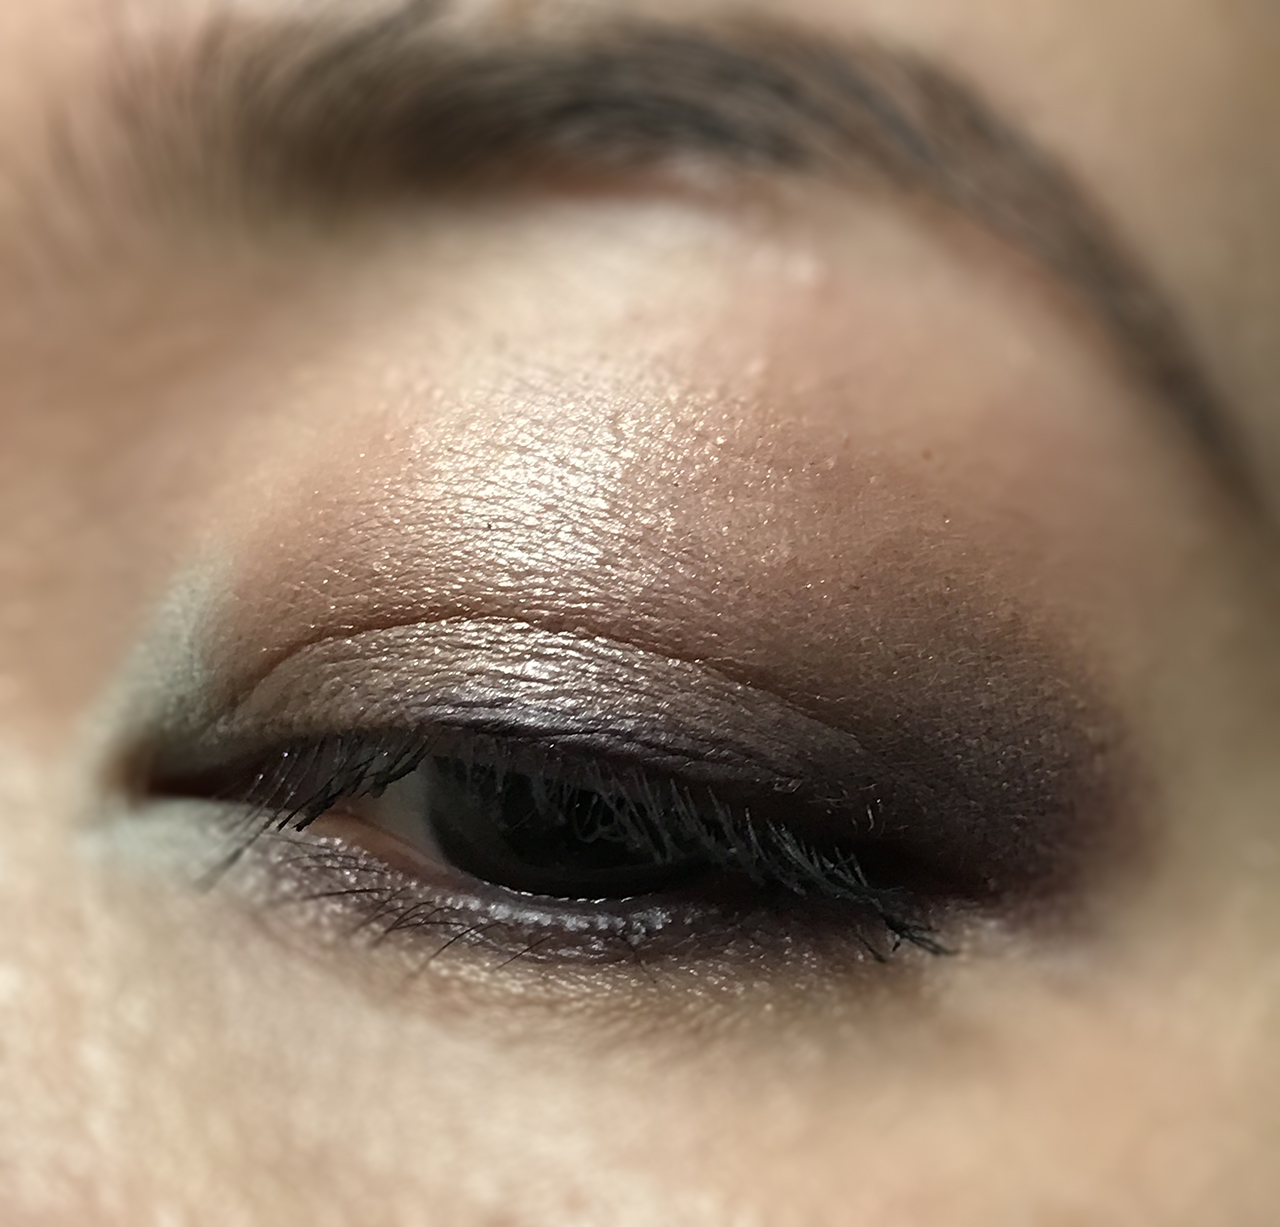 Chanel Les 4 Ombres Premiere Eclosion eye look